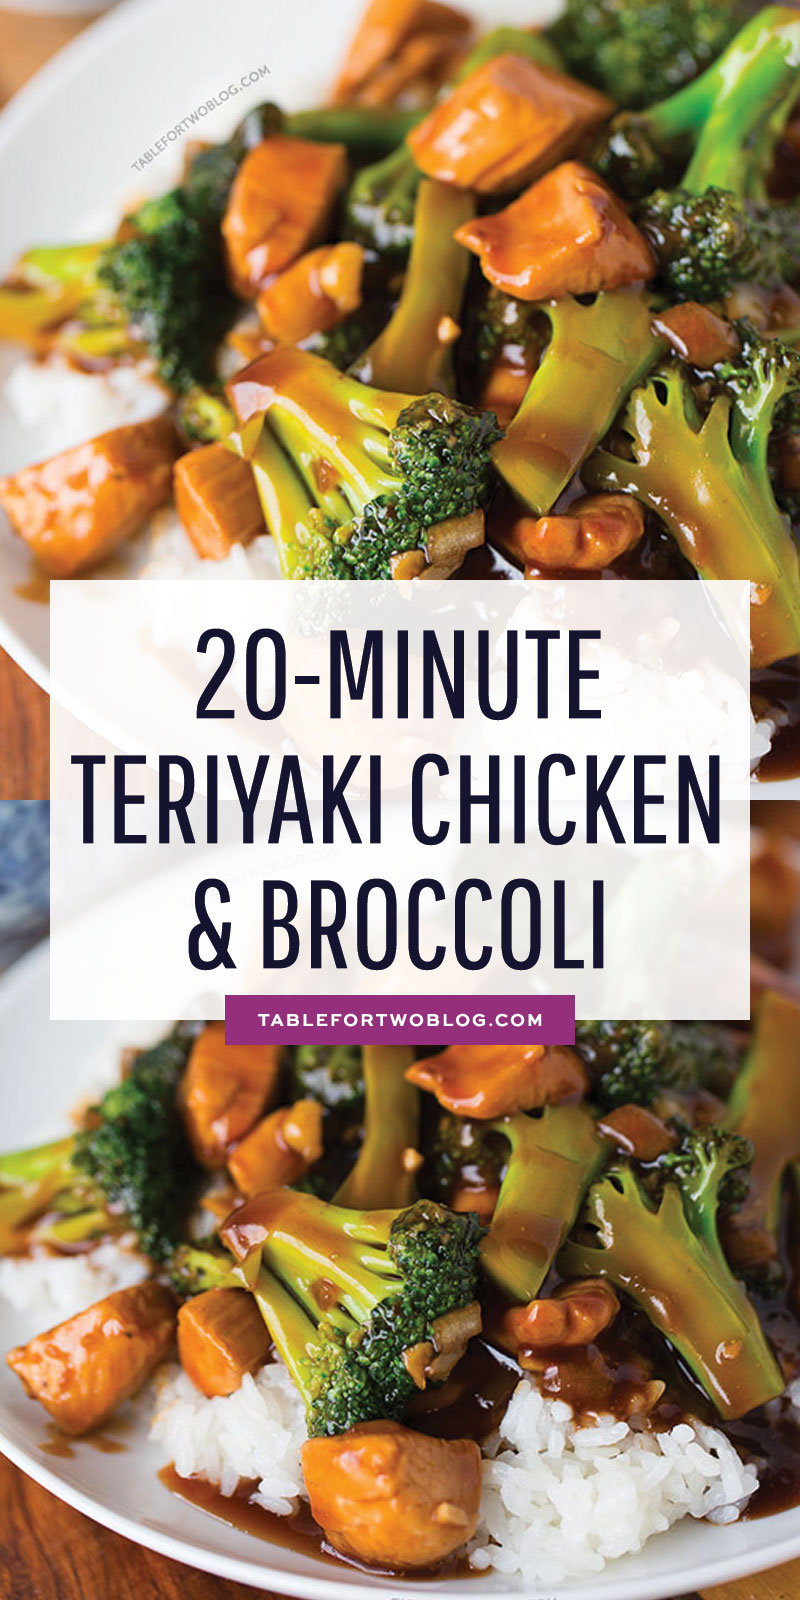 This easy 20-minute teriyaki chicken and broccoli will soon be a favorite in your house! Recipe on tablefortwoblog.com #teriyakichicken #quickdinner #easymeal #chickenandbroccoli #chickendinner #chickenrecipe #dinnerrecipe